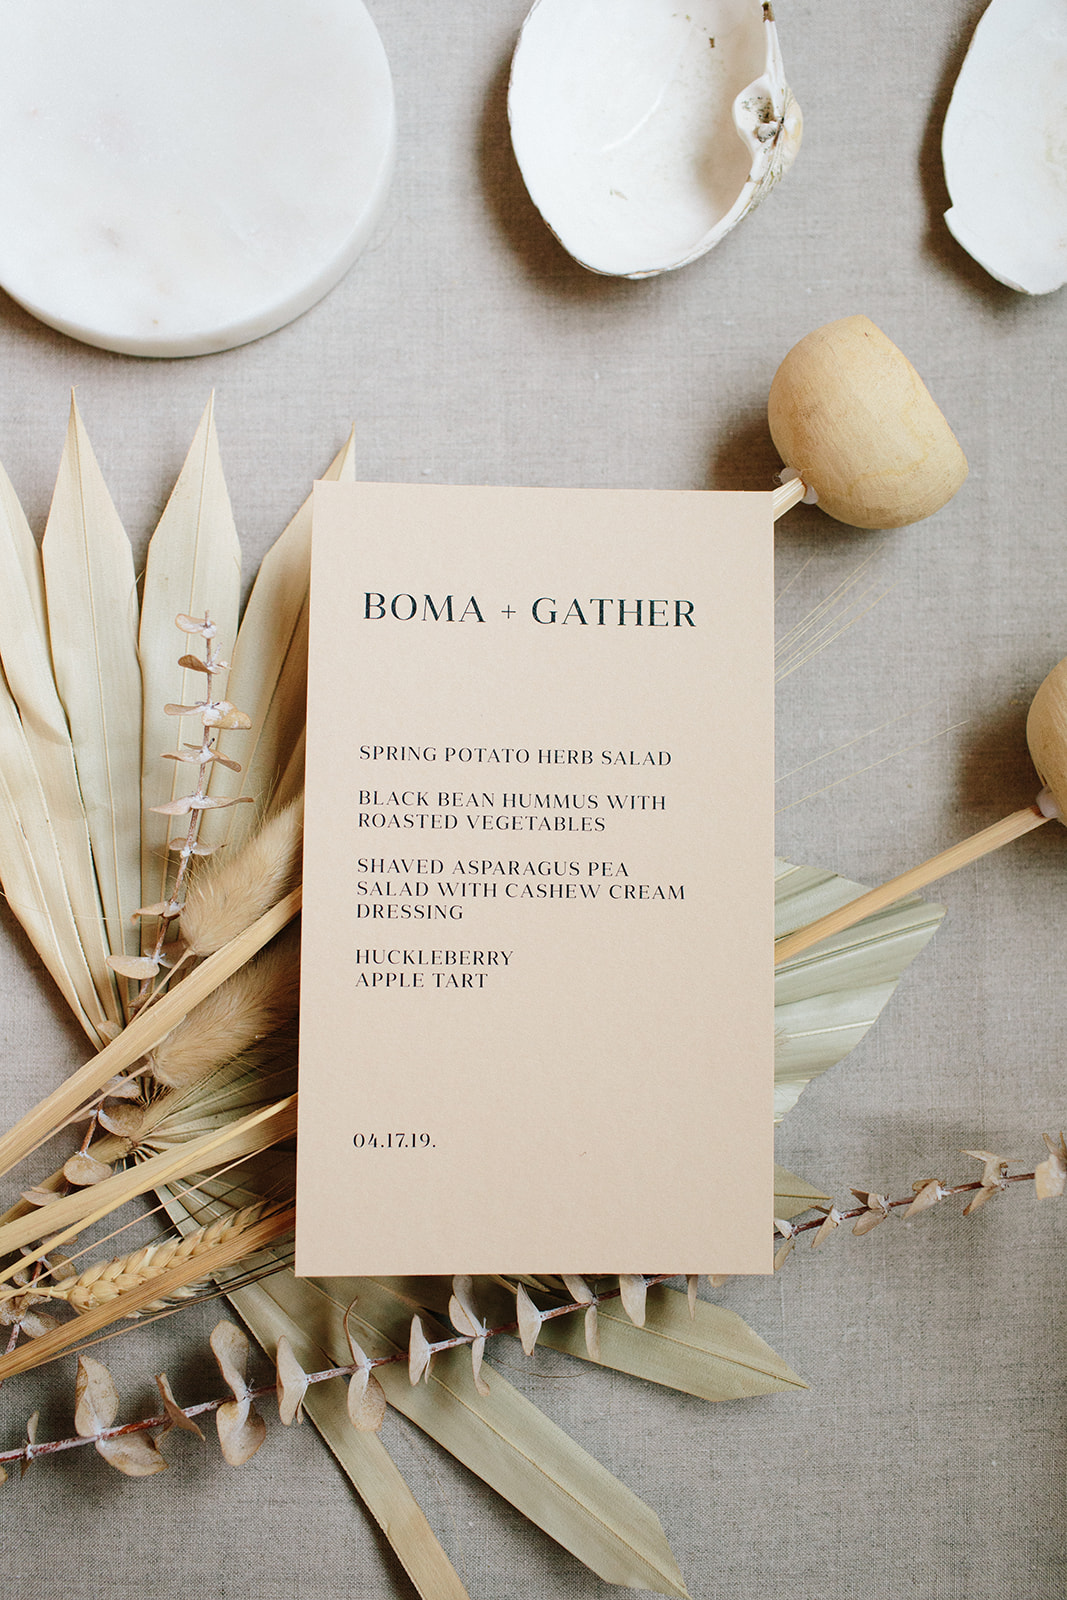 Gather-Boma Event-2.jpg